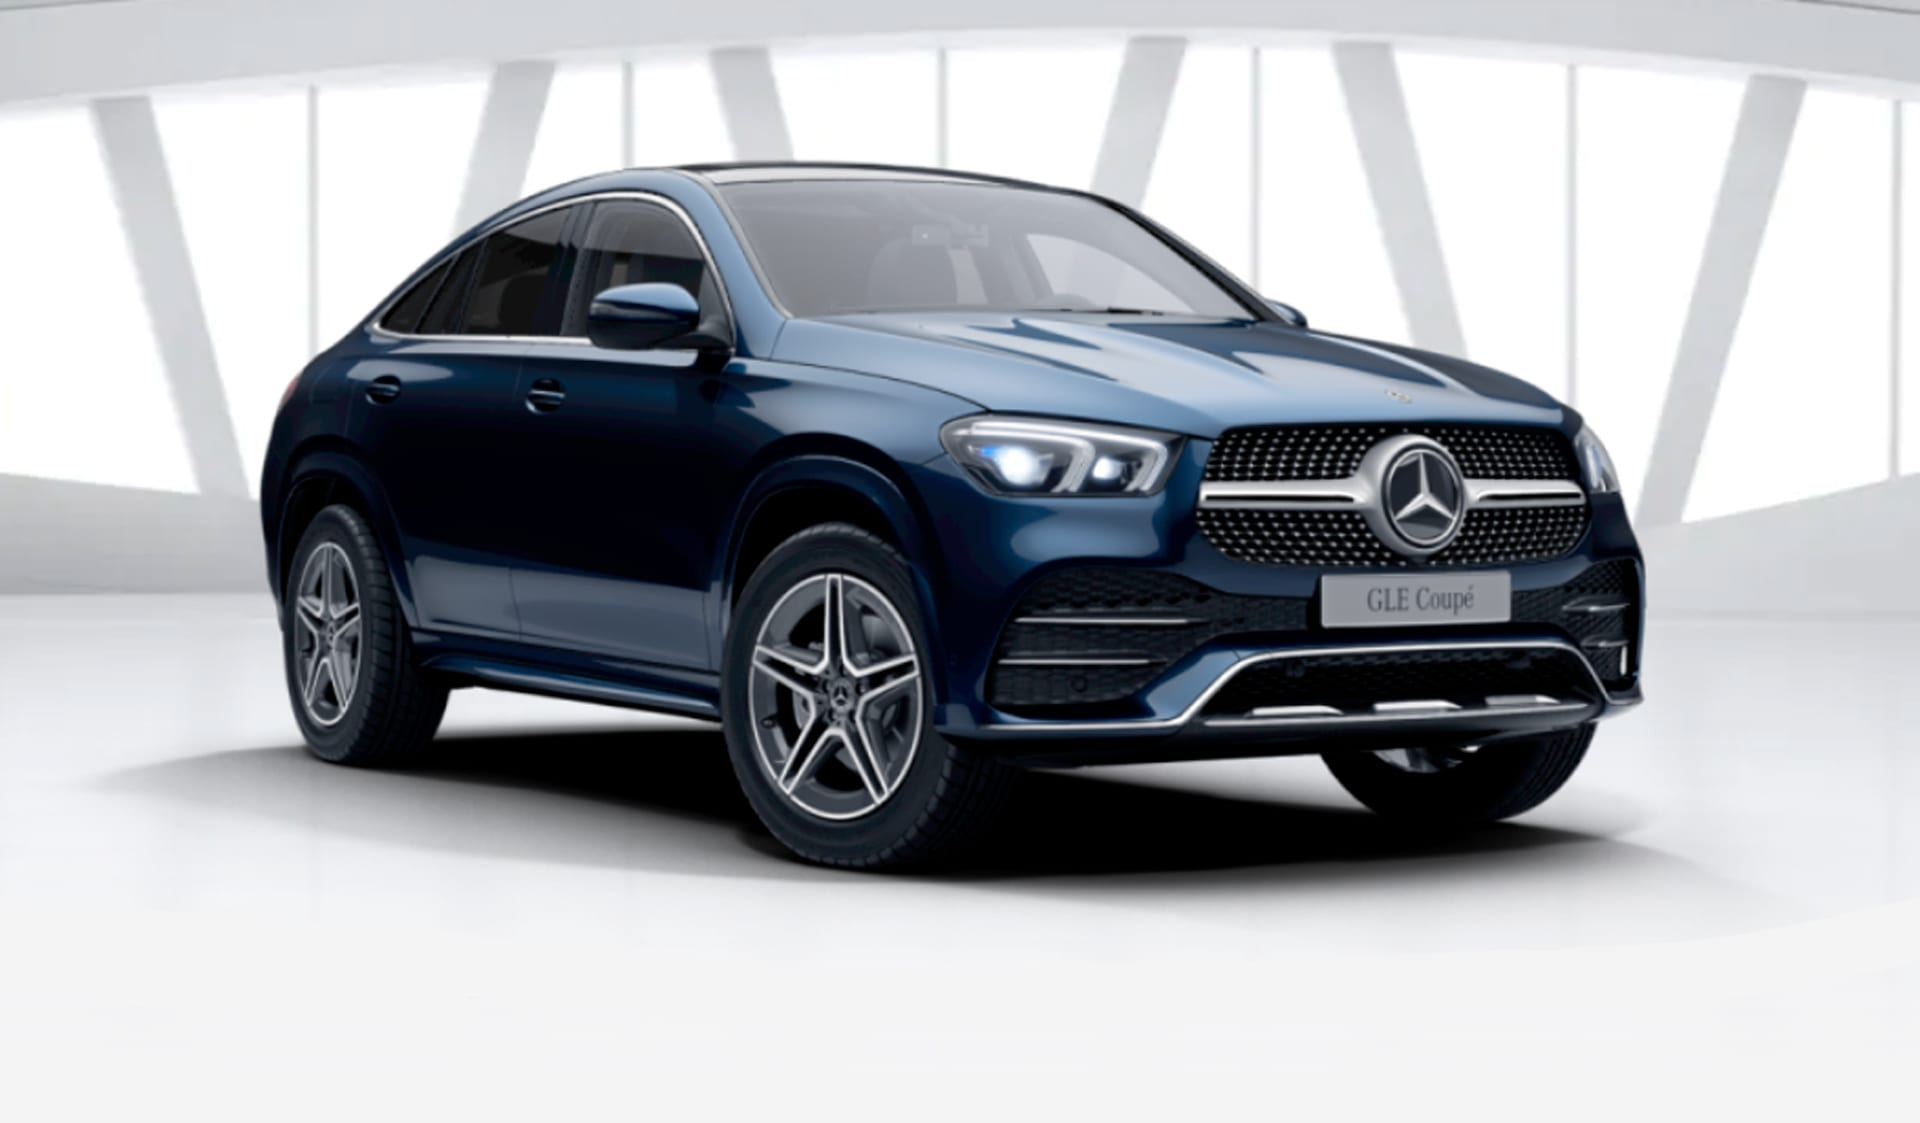 Mercedes-Benz GLE Coupe 0152600681